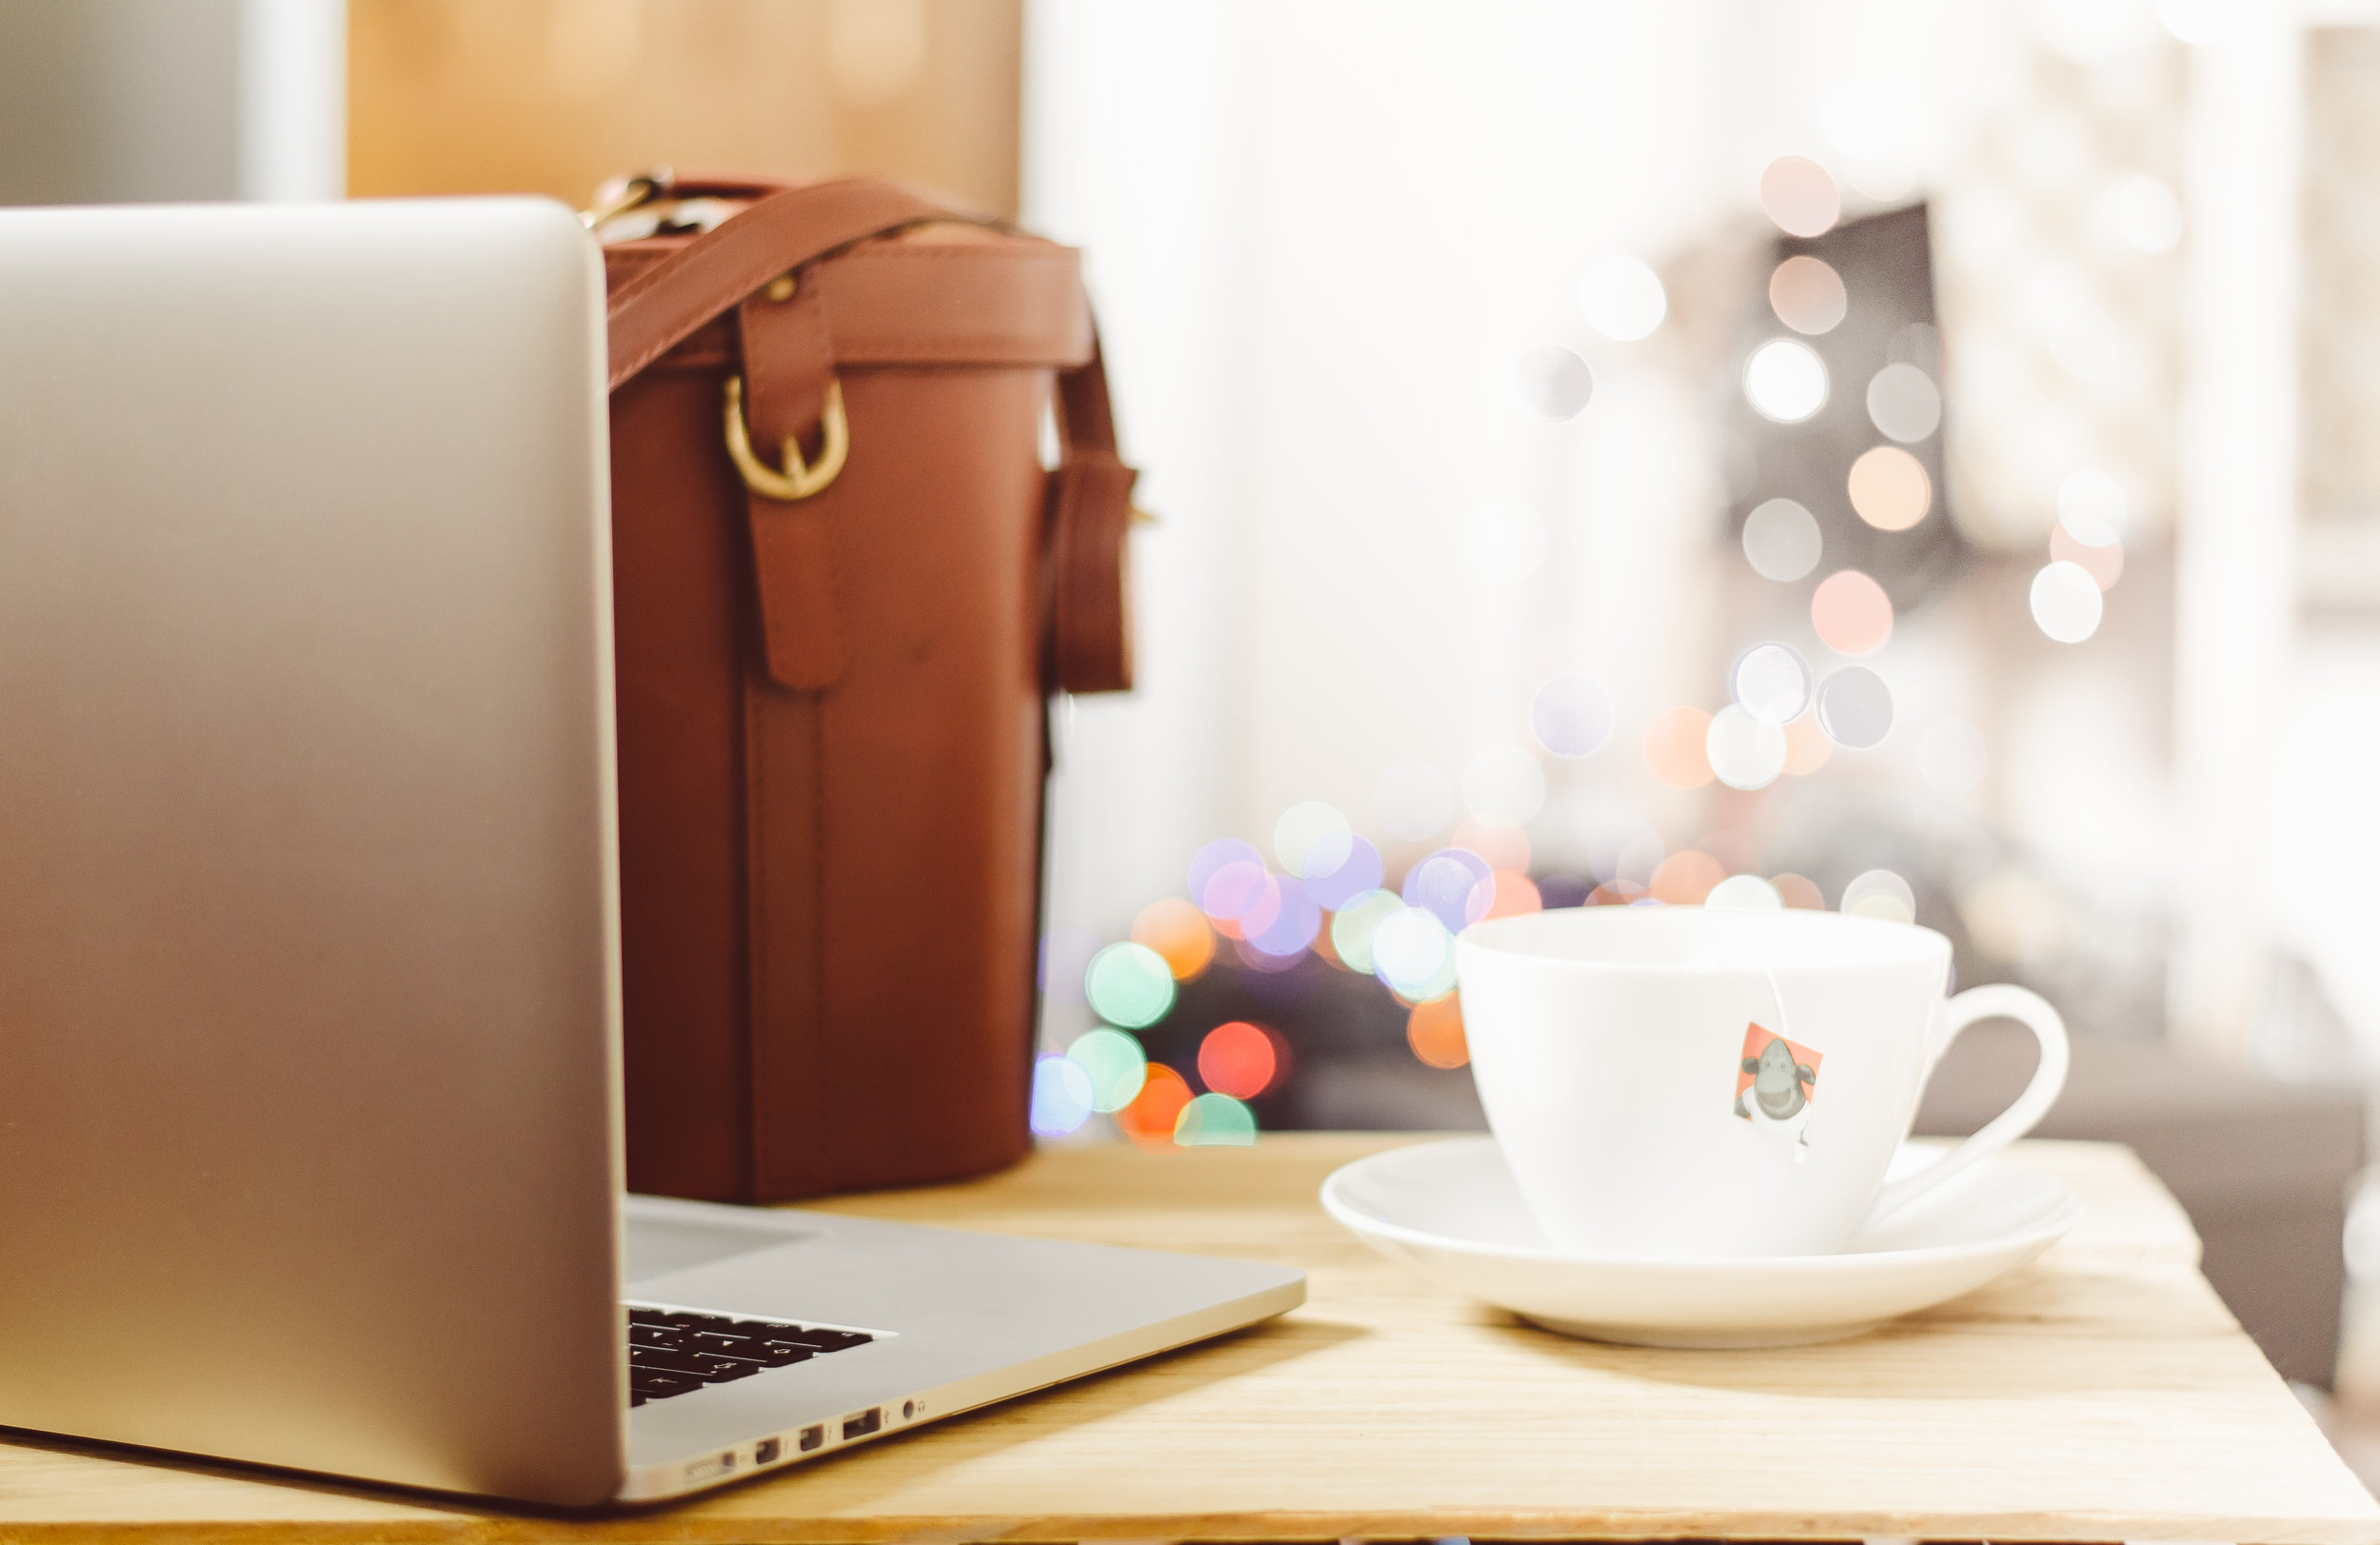 An image of a laptop and a cup of tea to symbolise the operations and business procedures at Hygge Me Global.